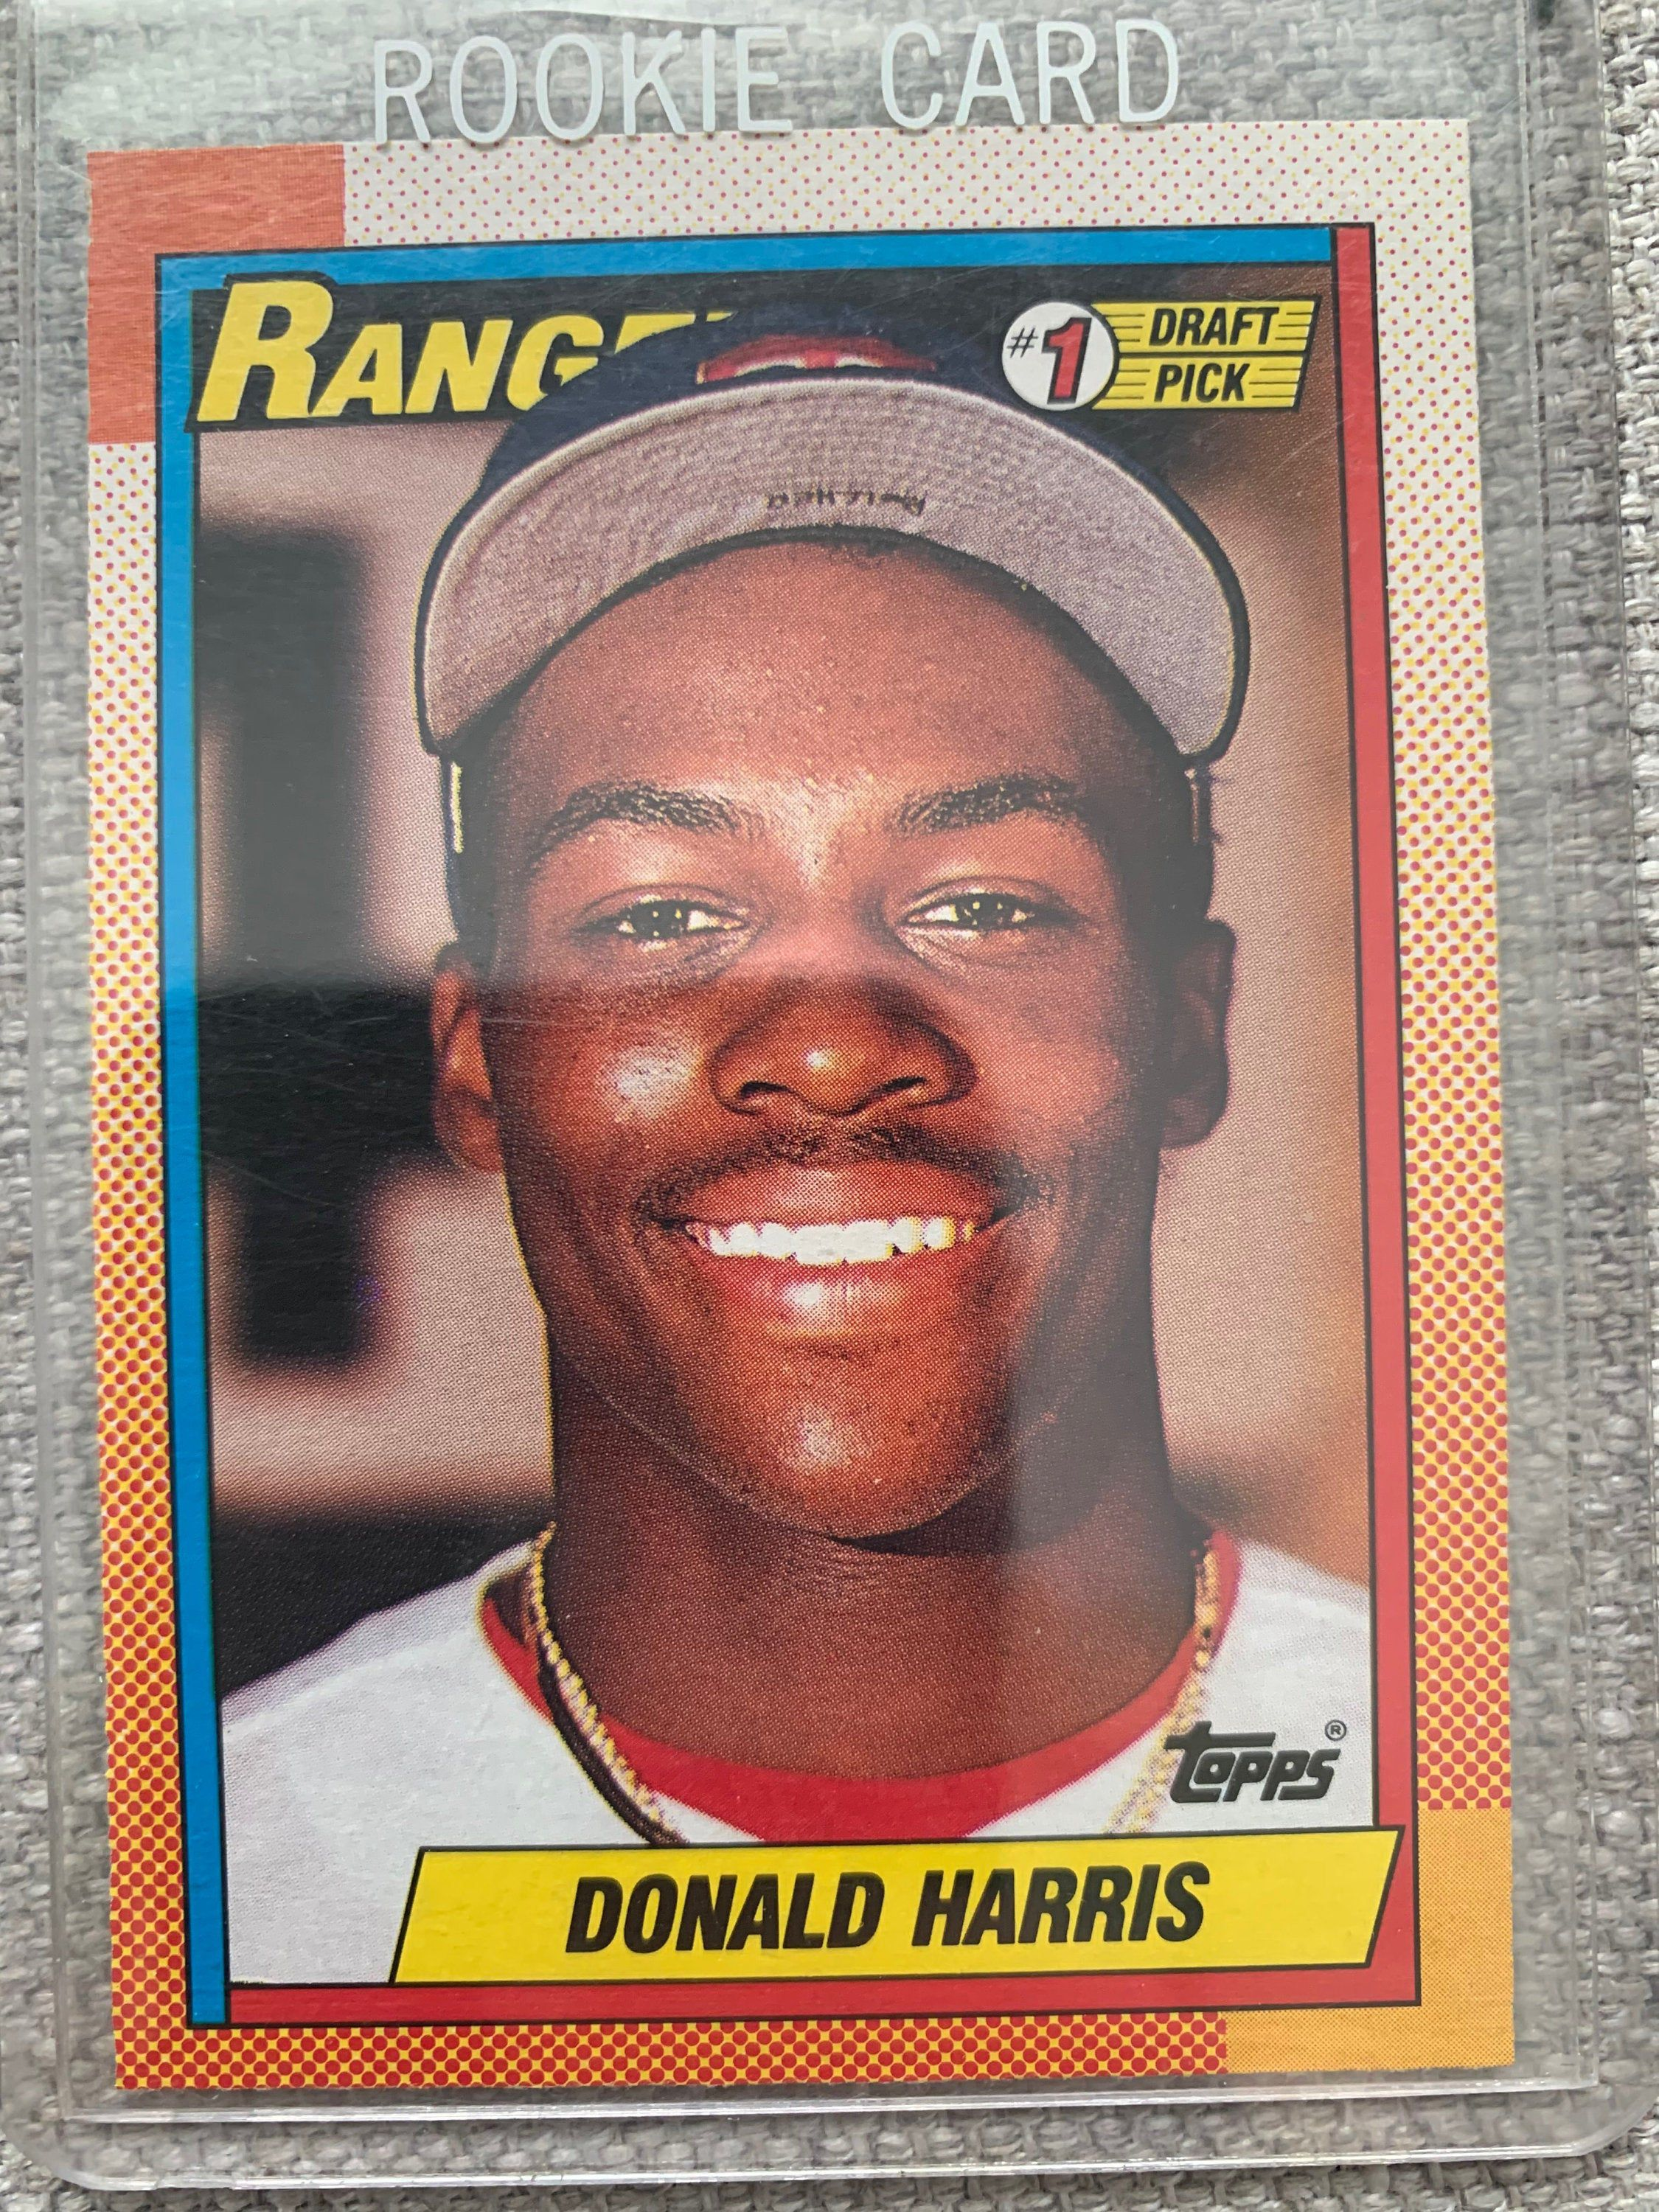 Donald Harris RC Topps 1990 Mint in 2020 Donald, Mint